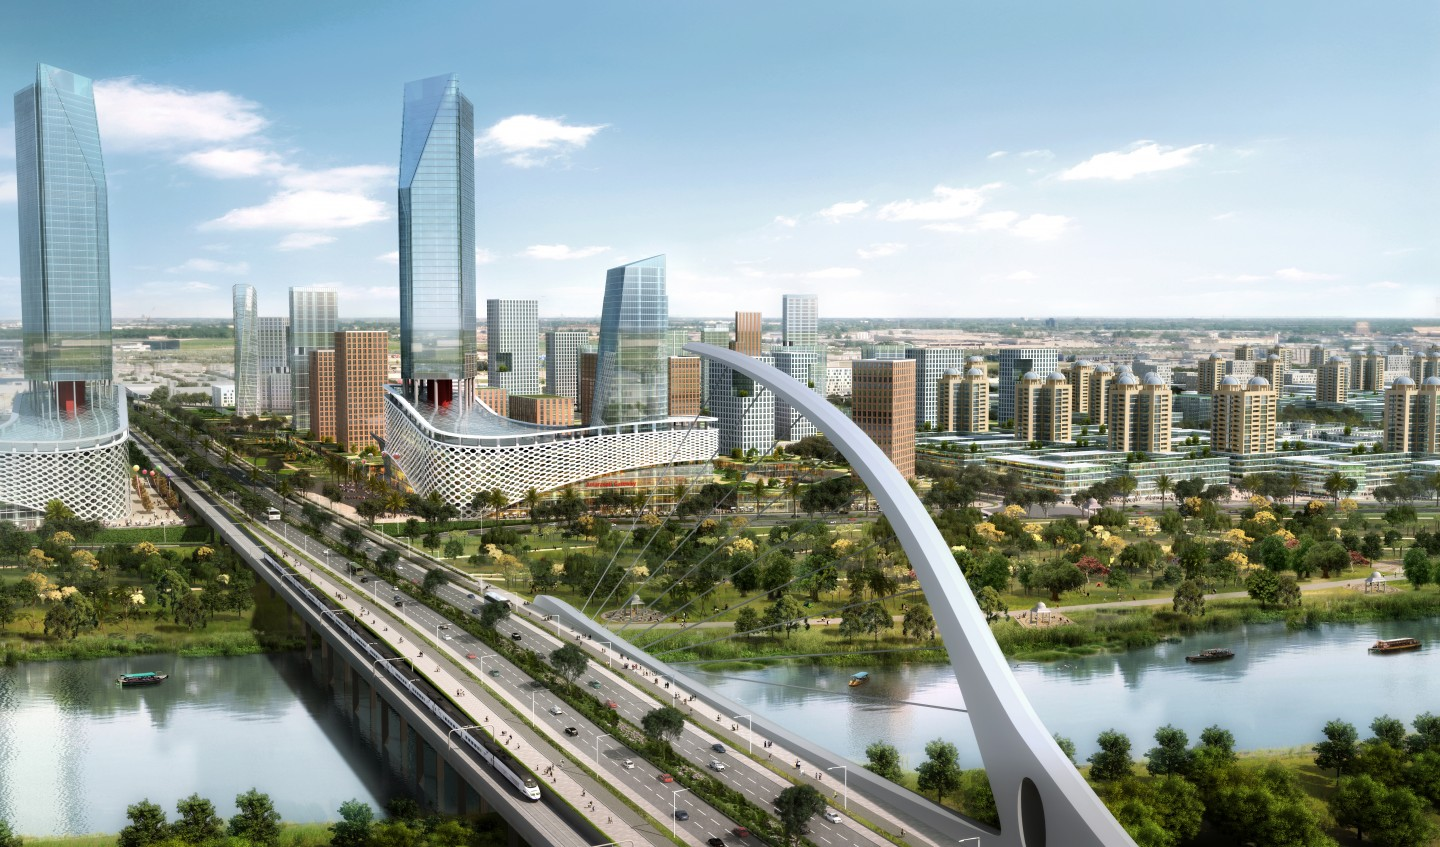 Artist's impression of Sino-Singapore Guangzhou Knowledge City. (ASCENDAS)